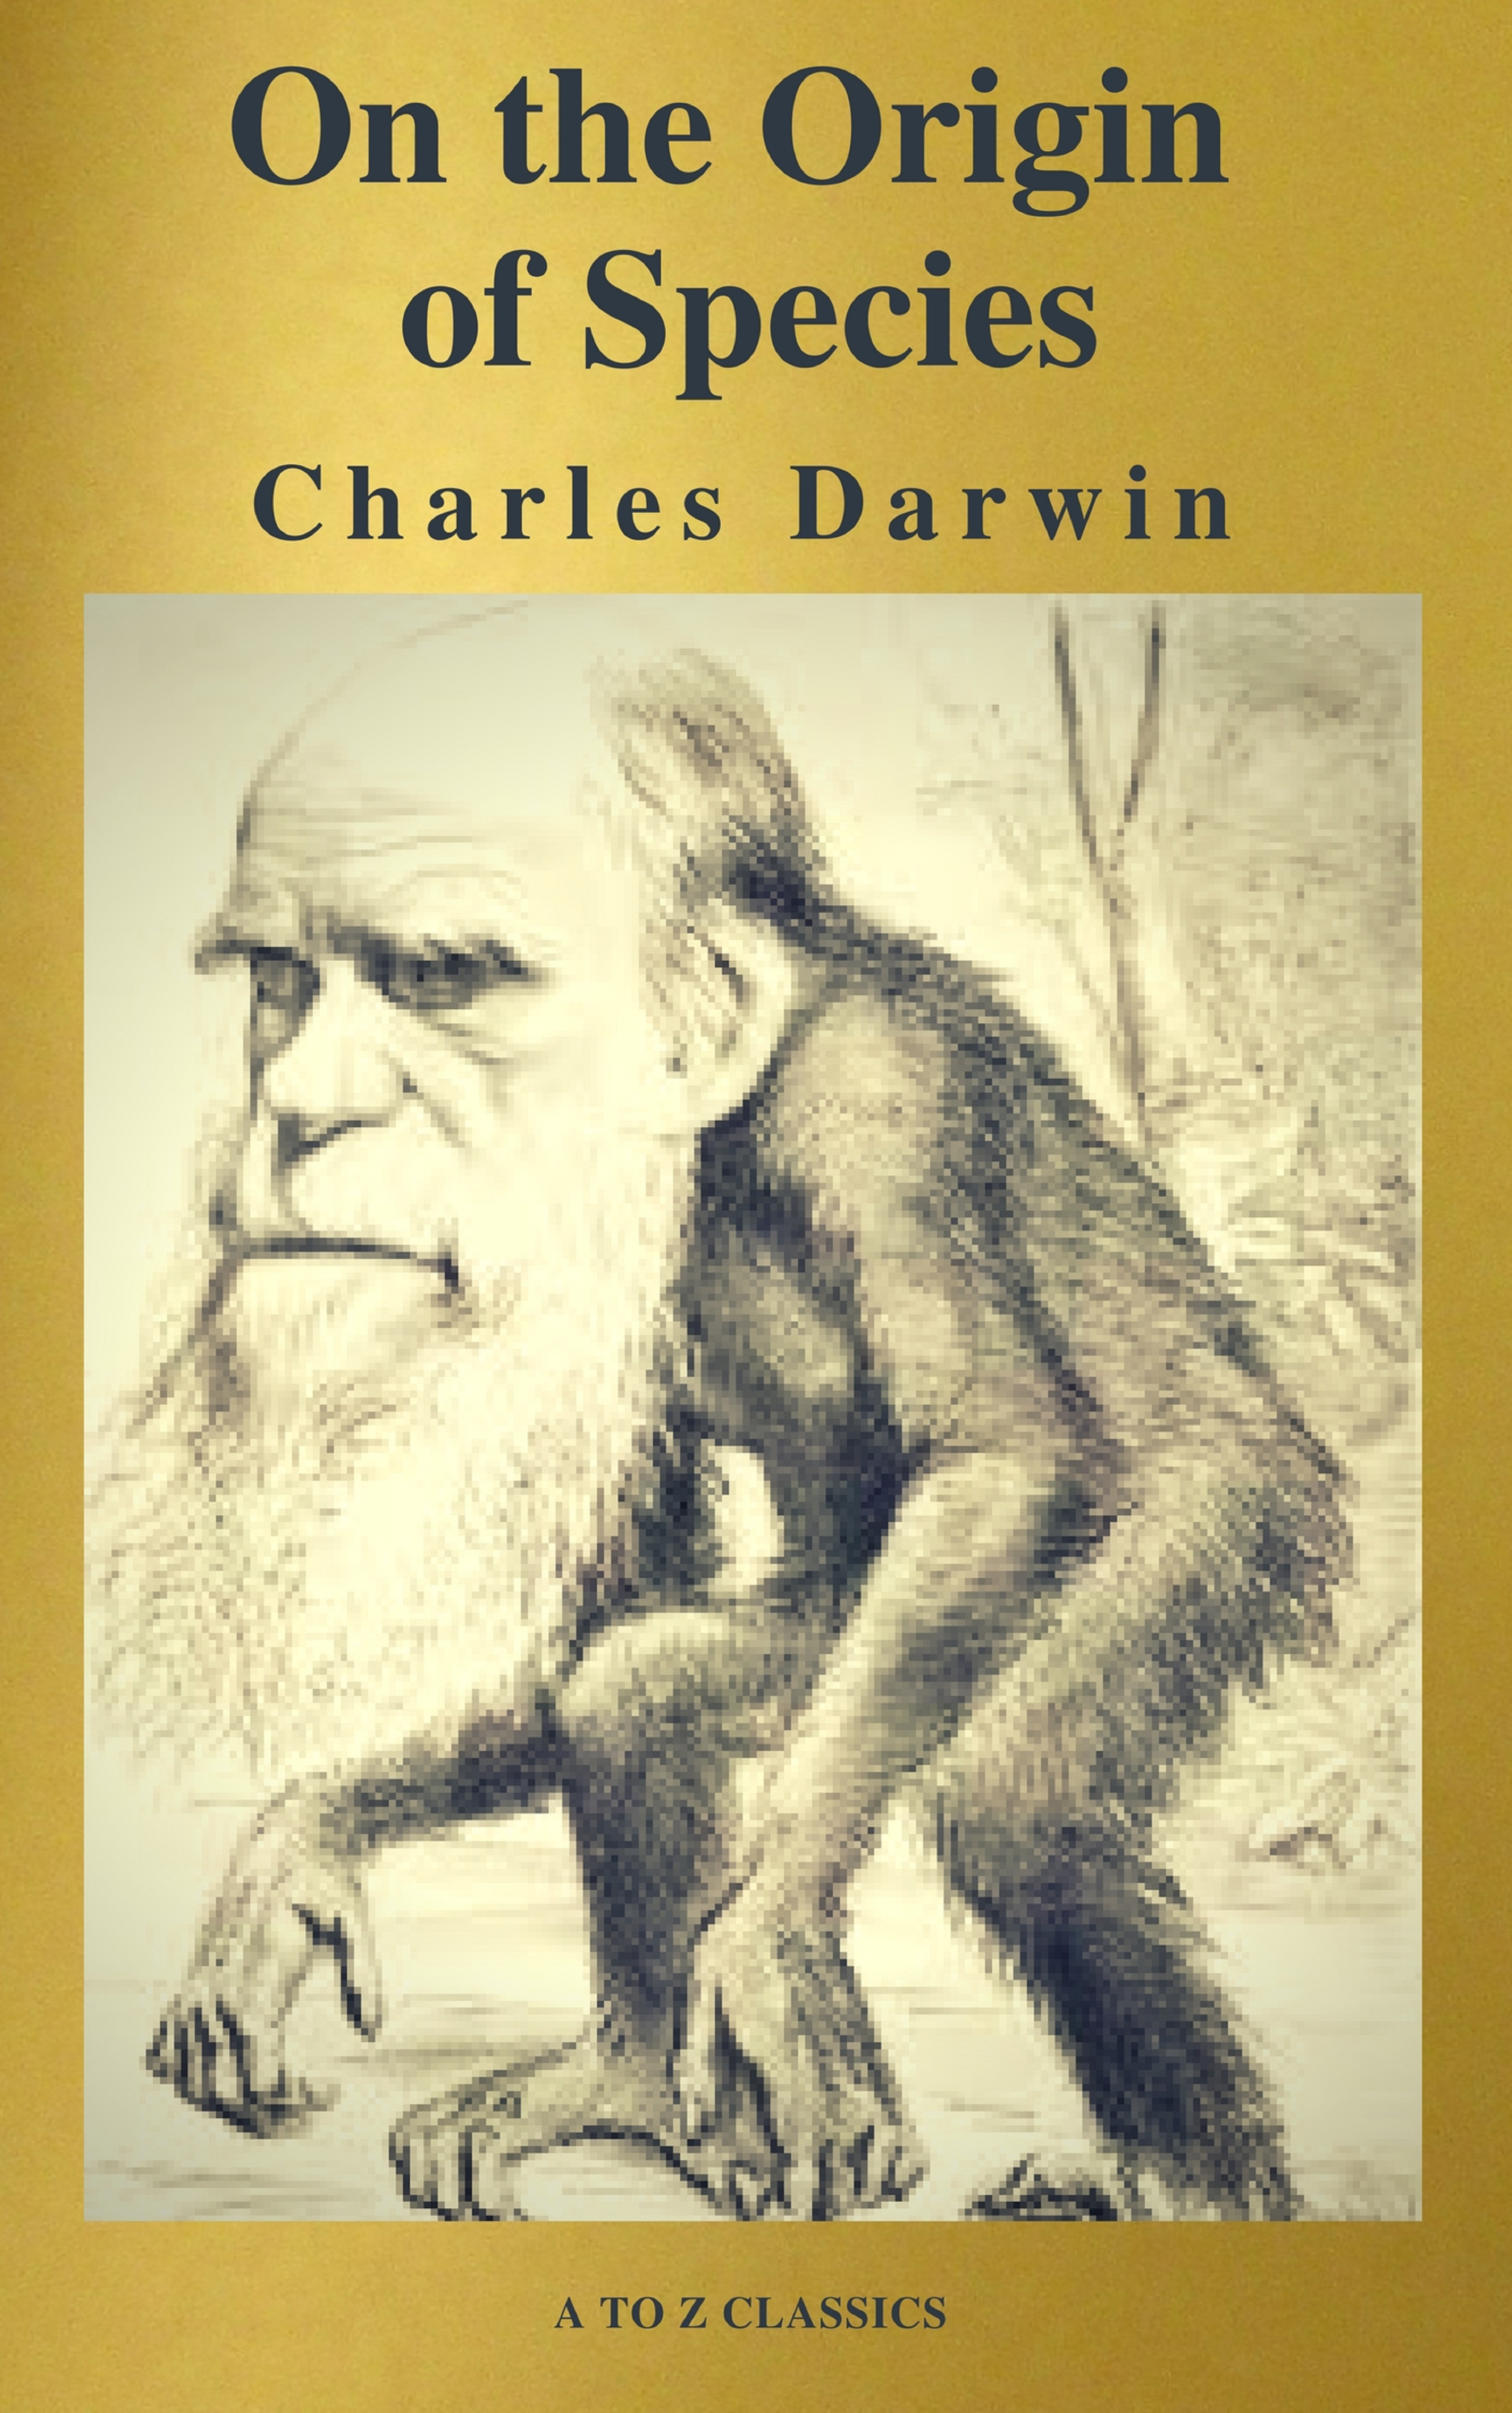 Charles Darwin The Origin Of Species ( A to Z Classics )